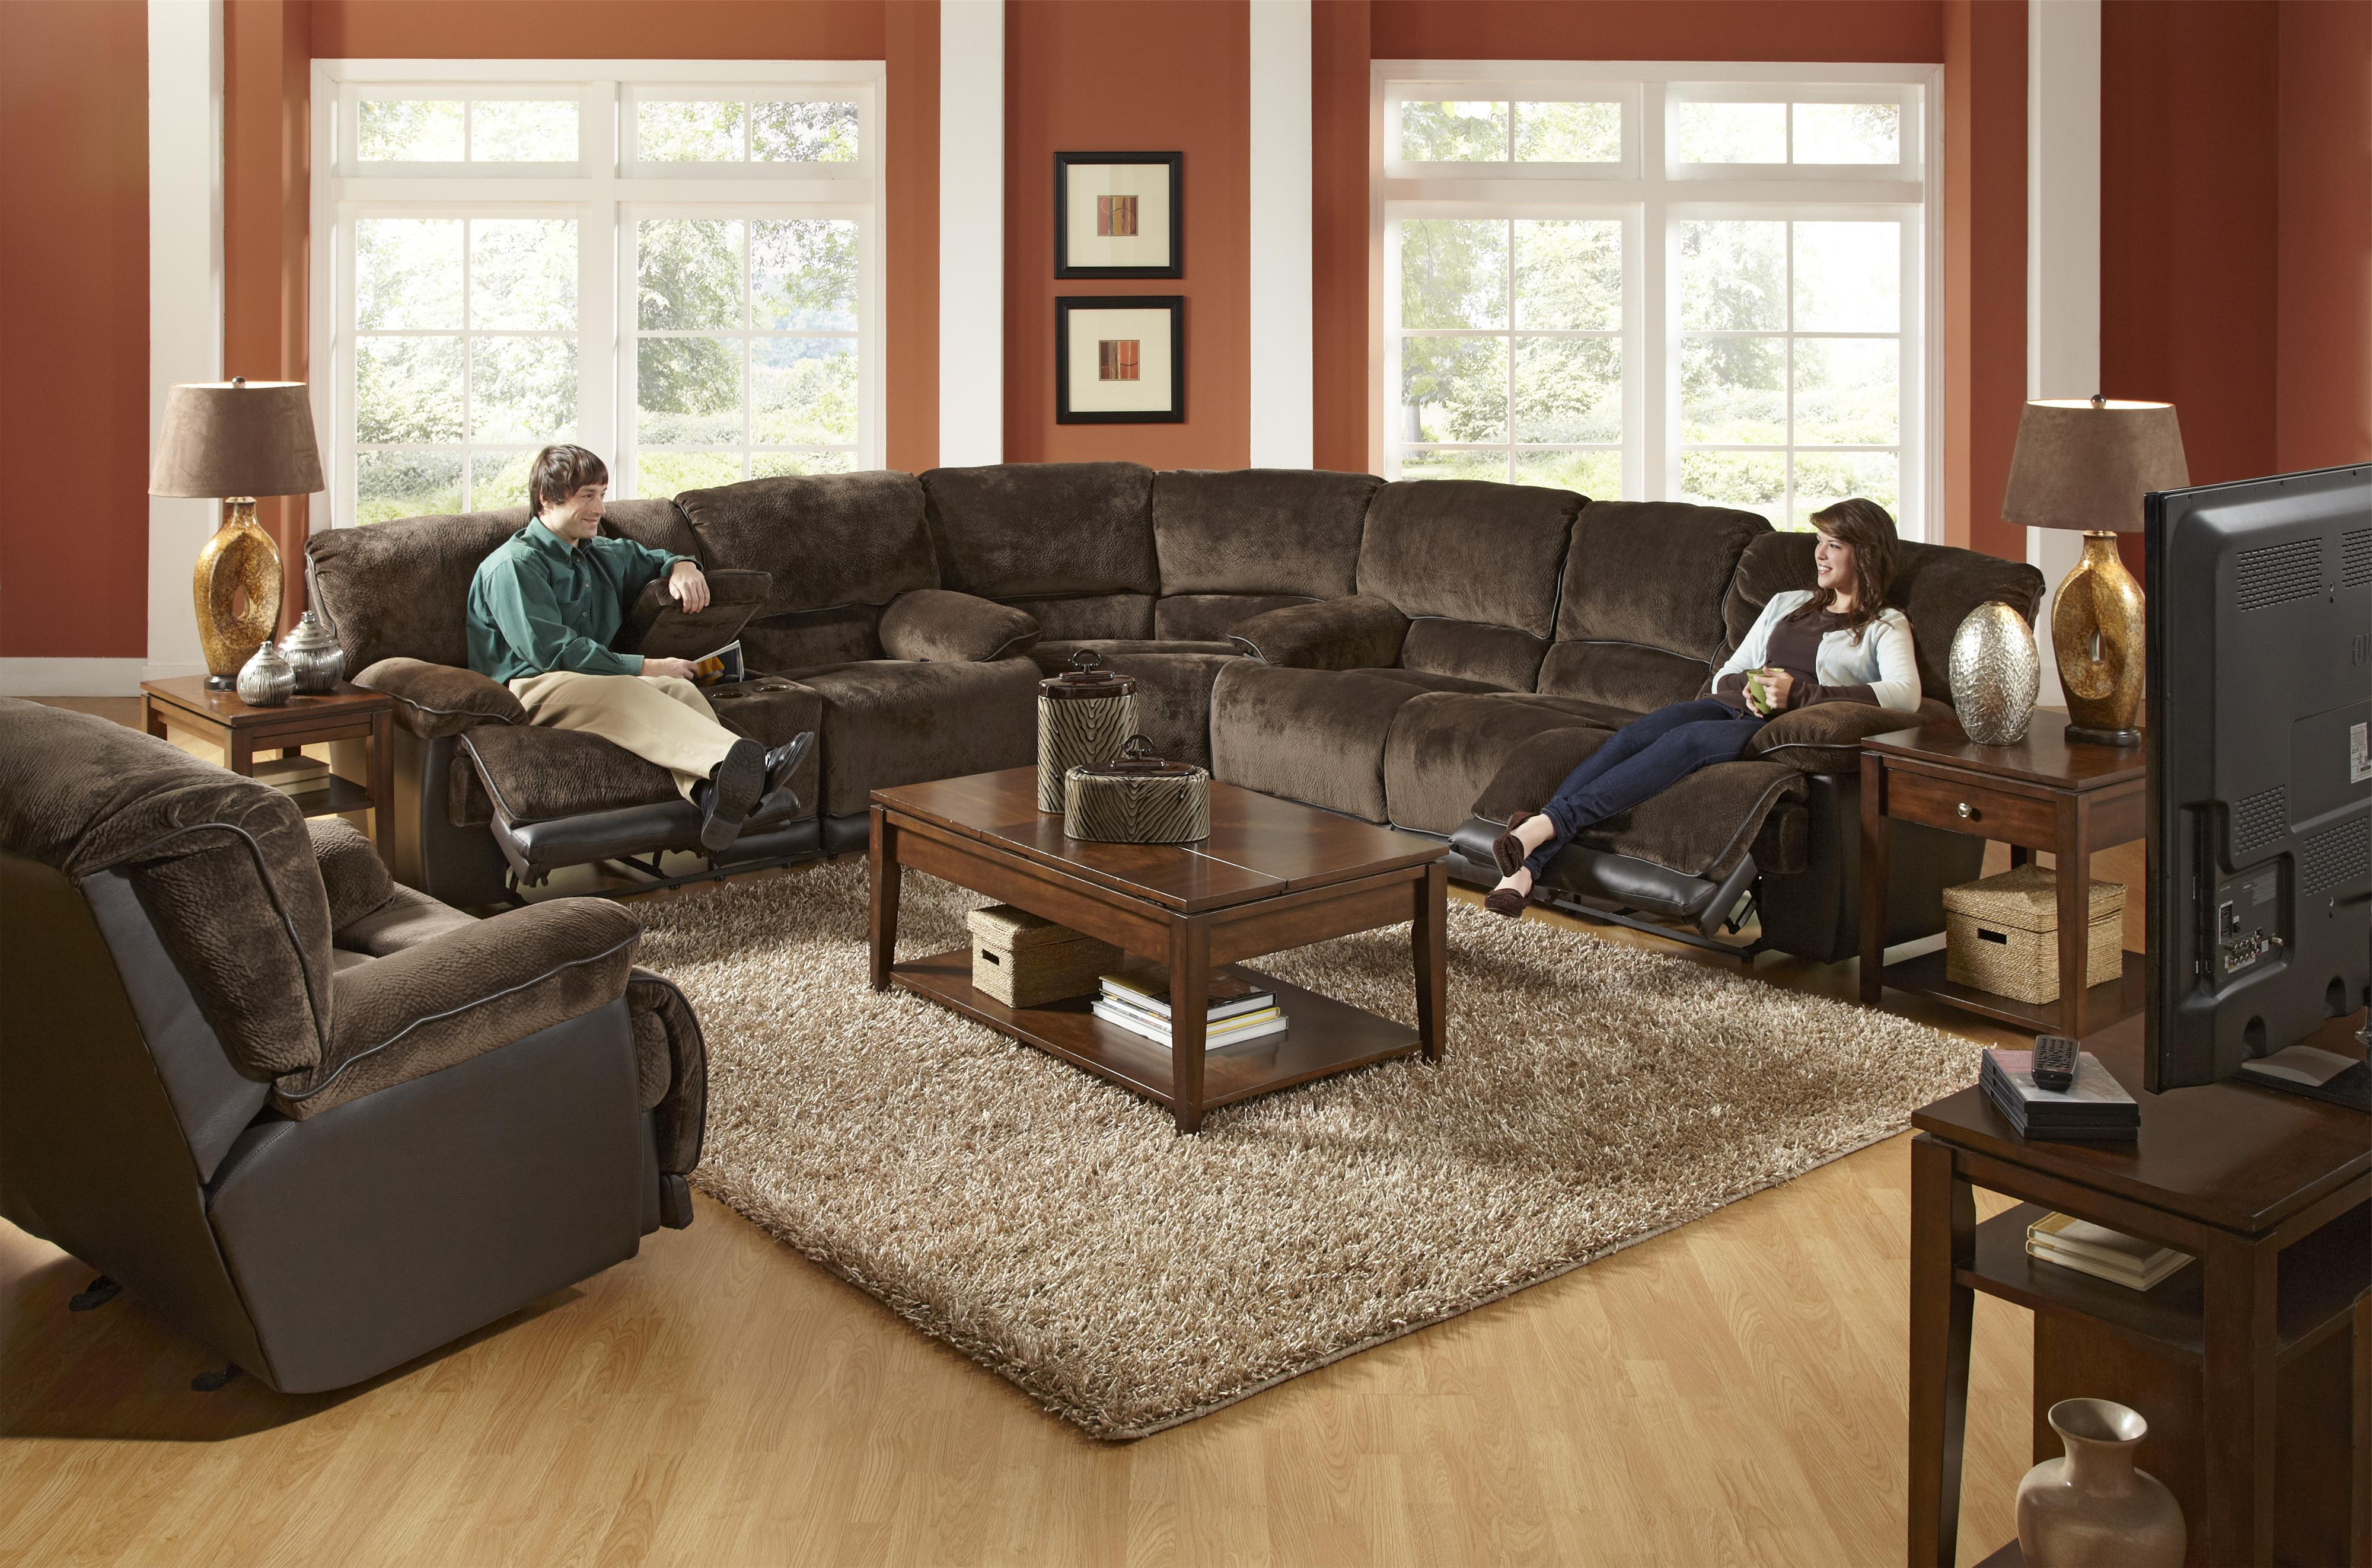 Declan 3 Piece Power Reclining Sectionals With Right Facing Console Loveseat For Most Popular Brown Wraparound Couch Championship Chocolate Reclining (Gallery 18 of 20)